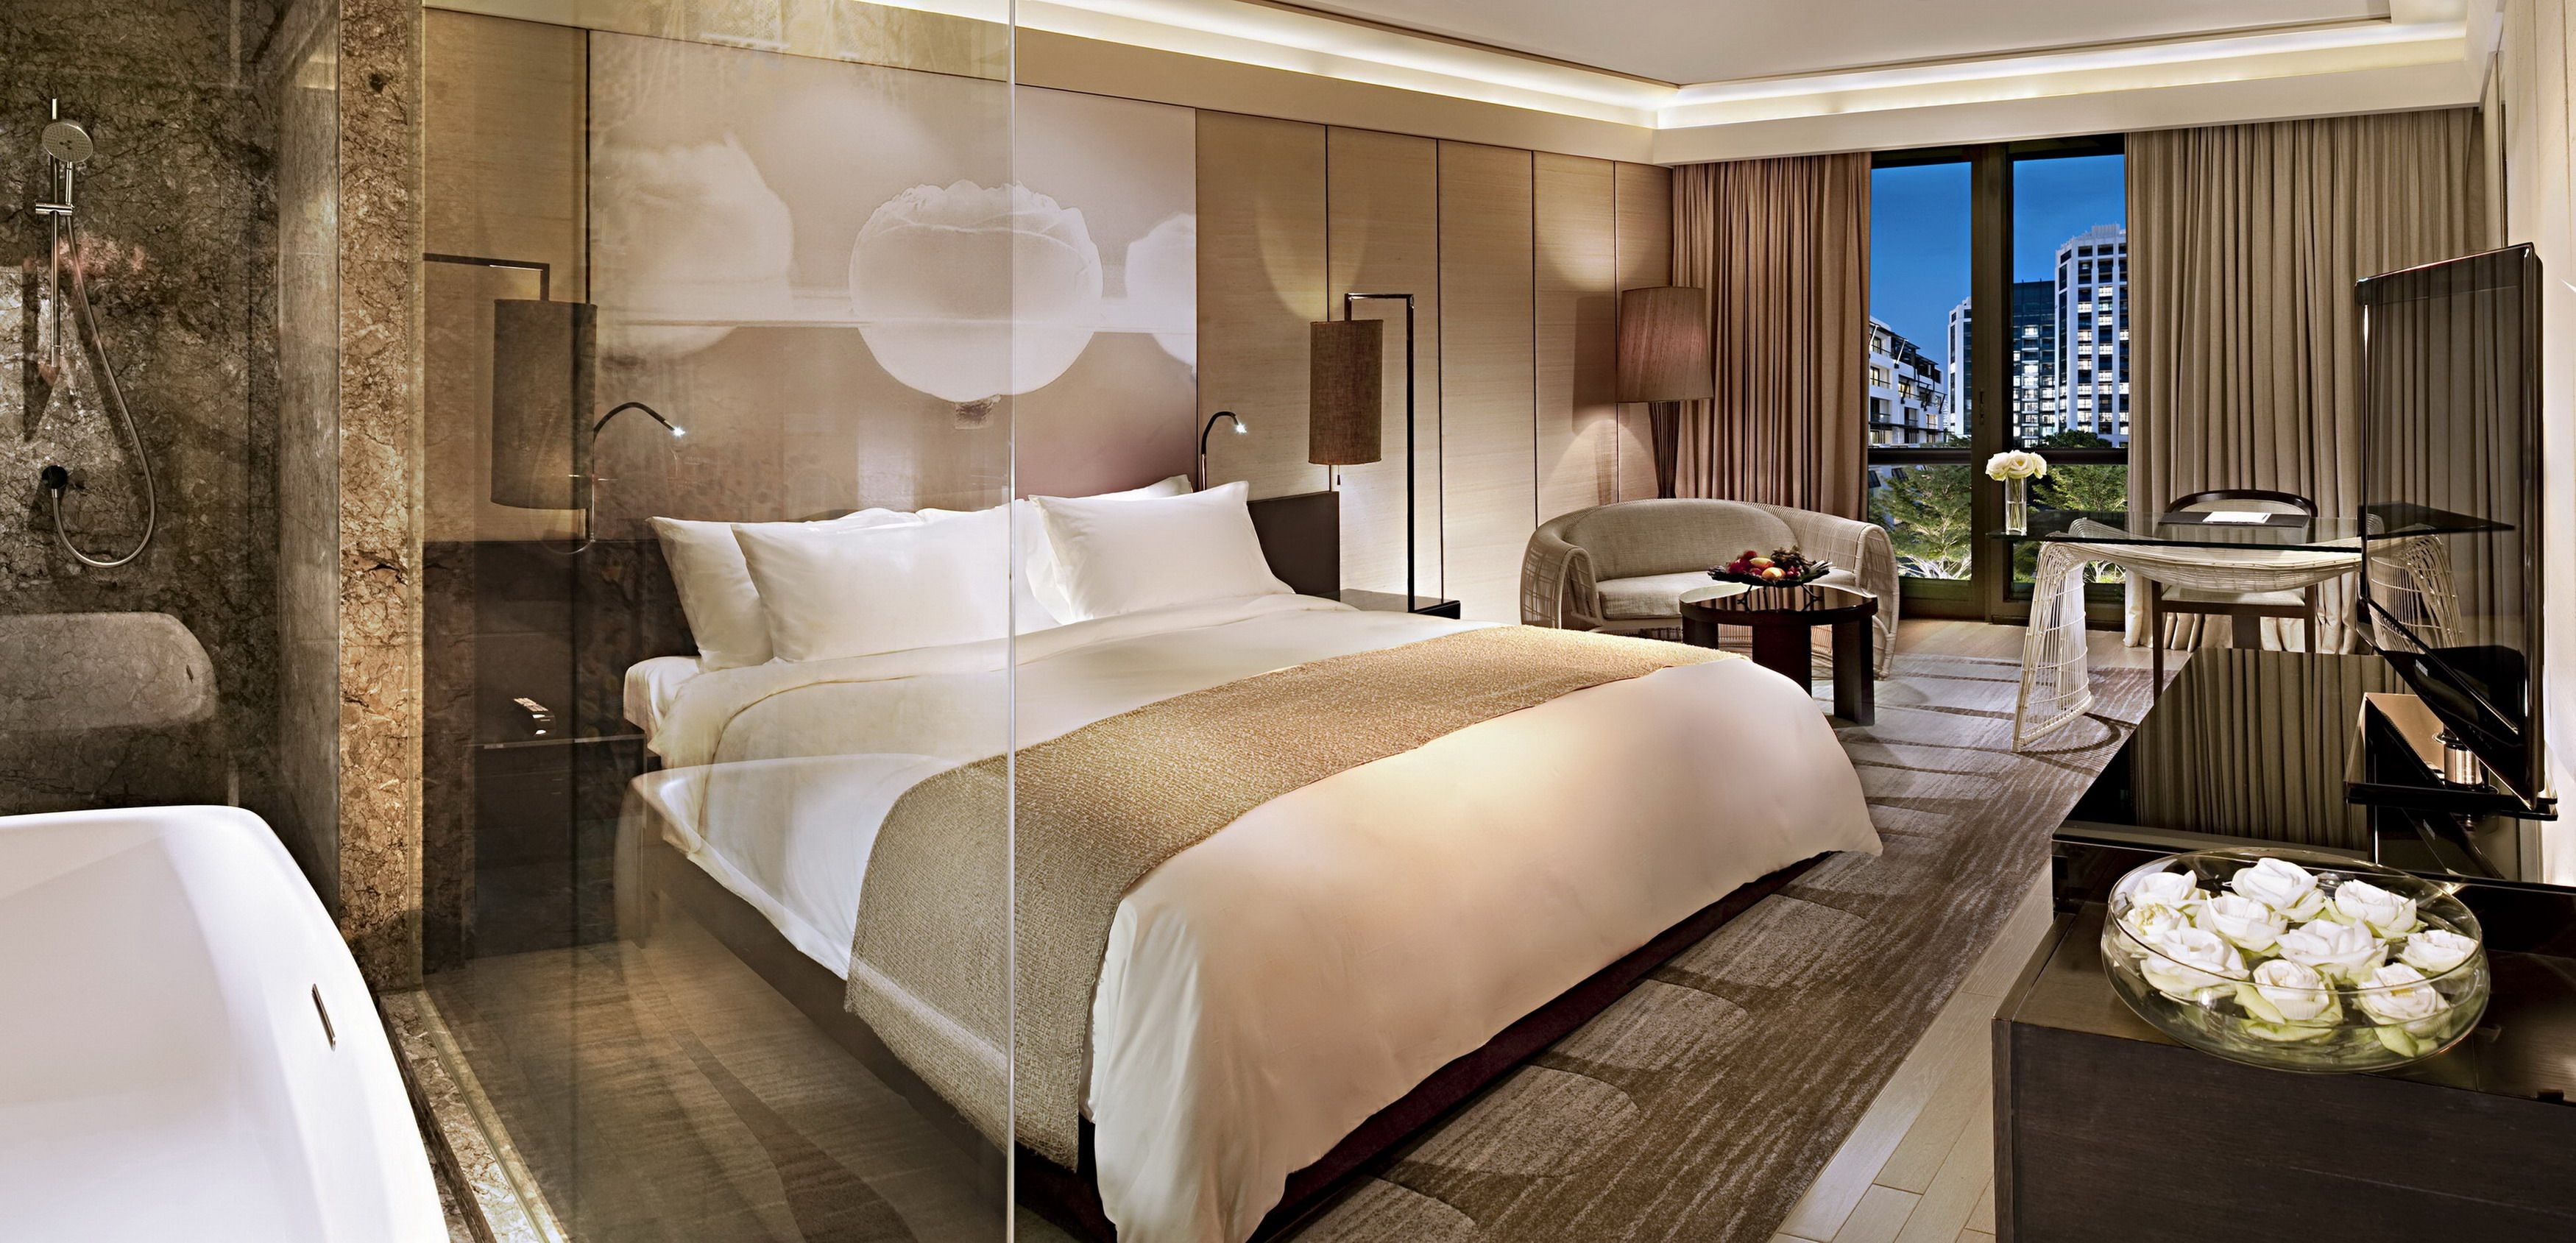 Luxury hotel rooms pictures new luxury kempinski hotel for Hotel bedroom design